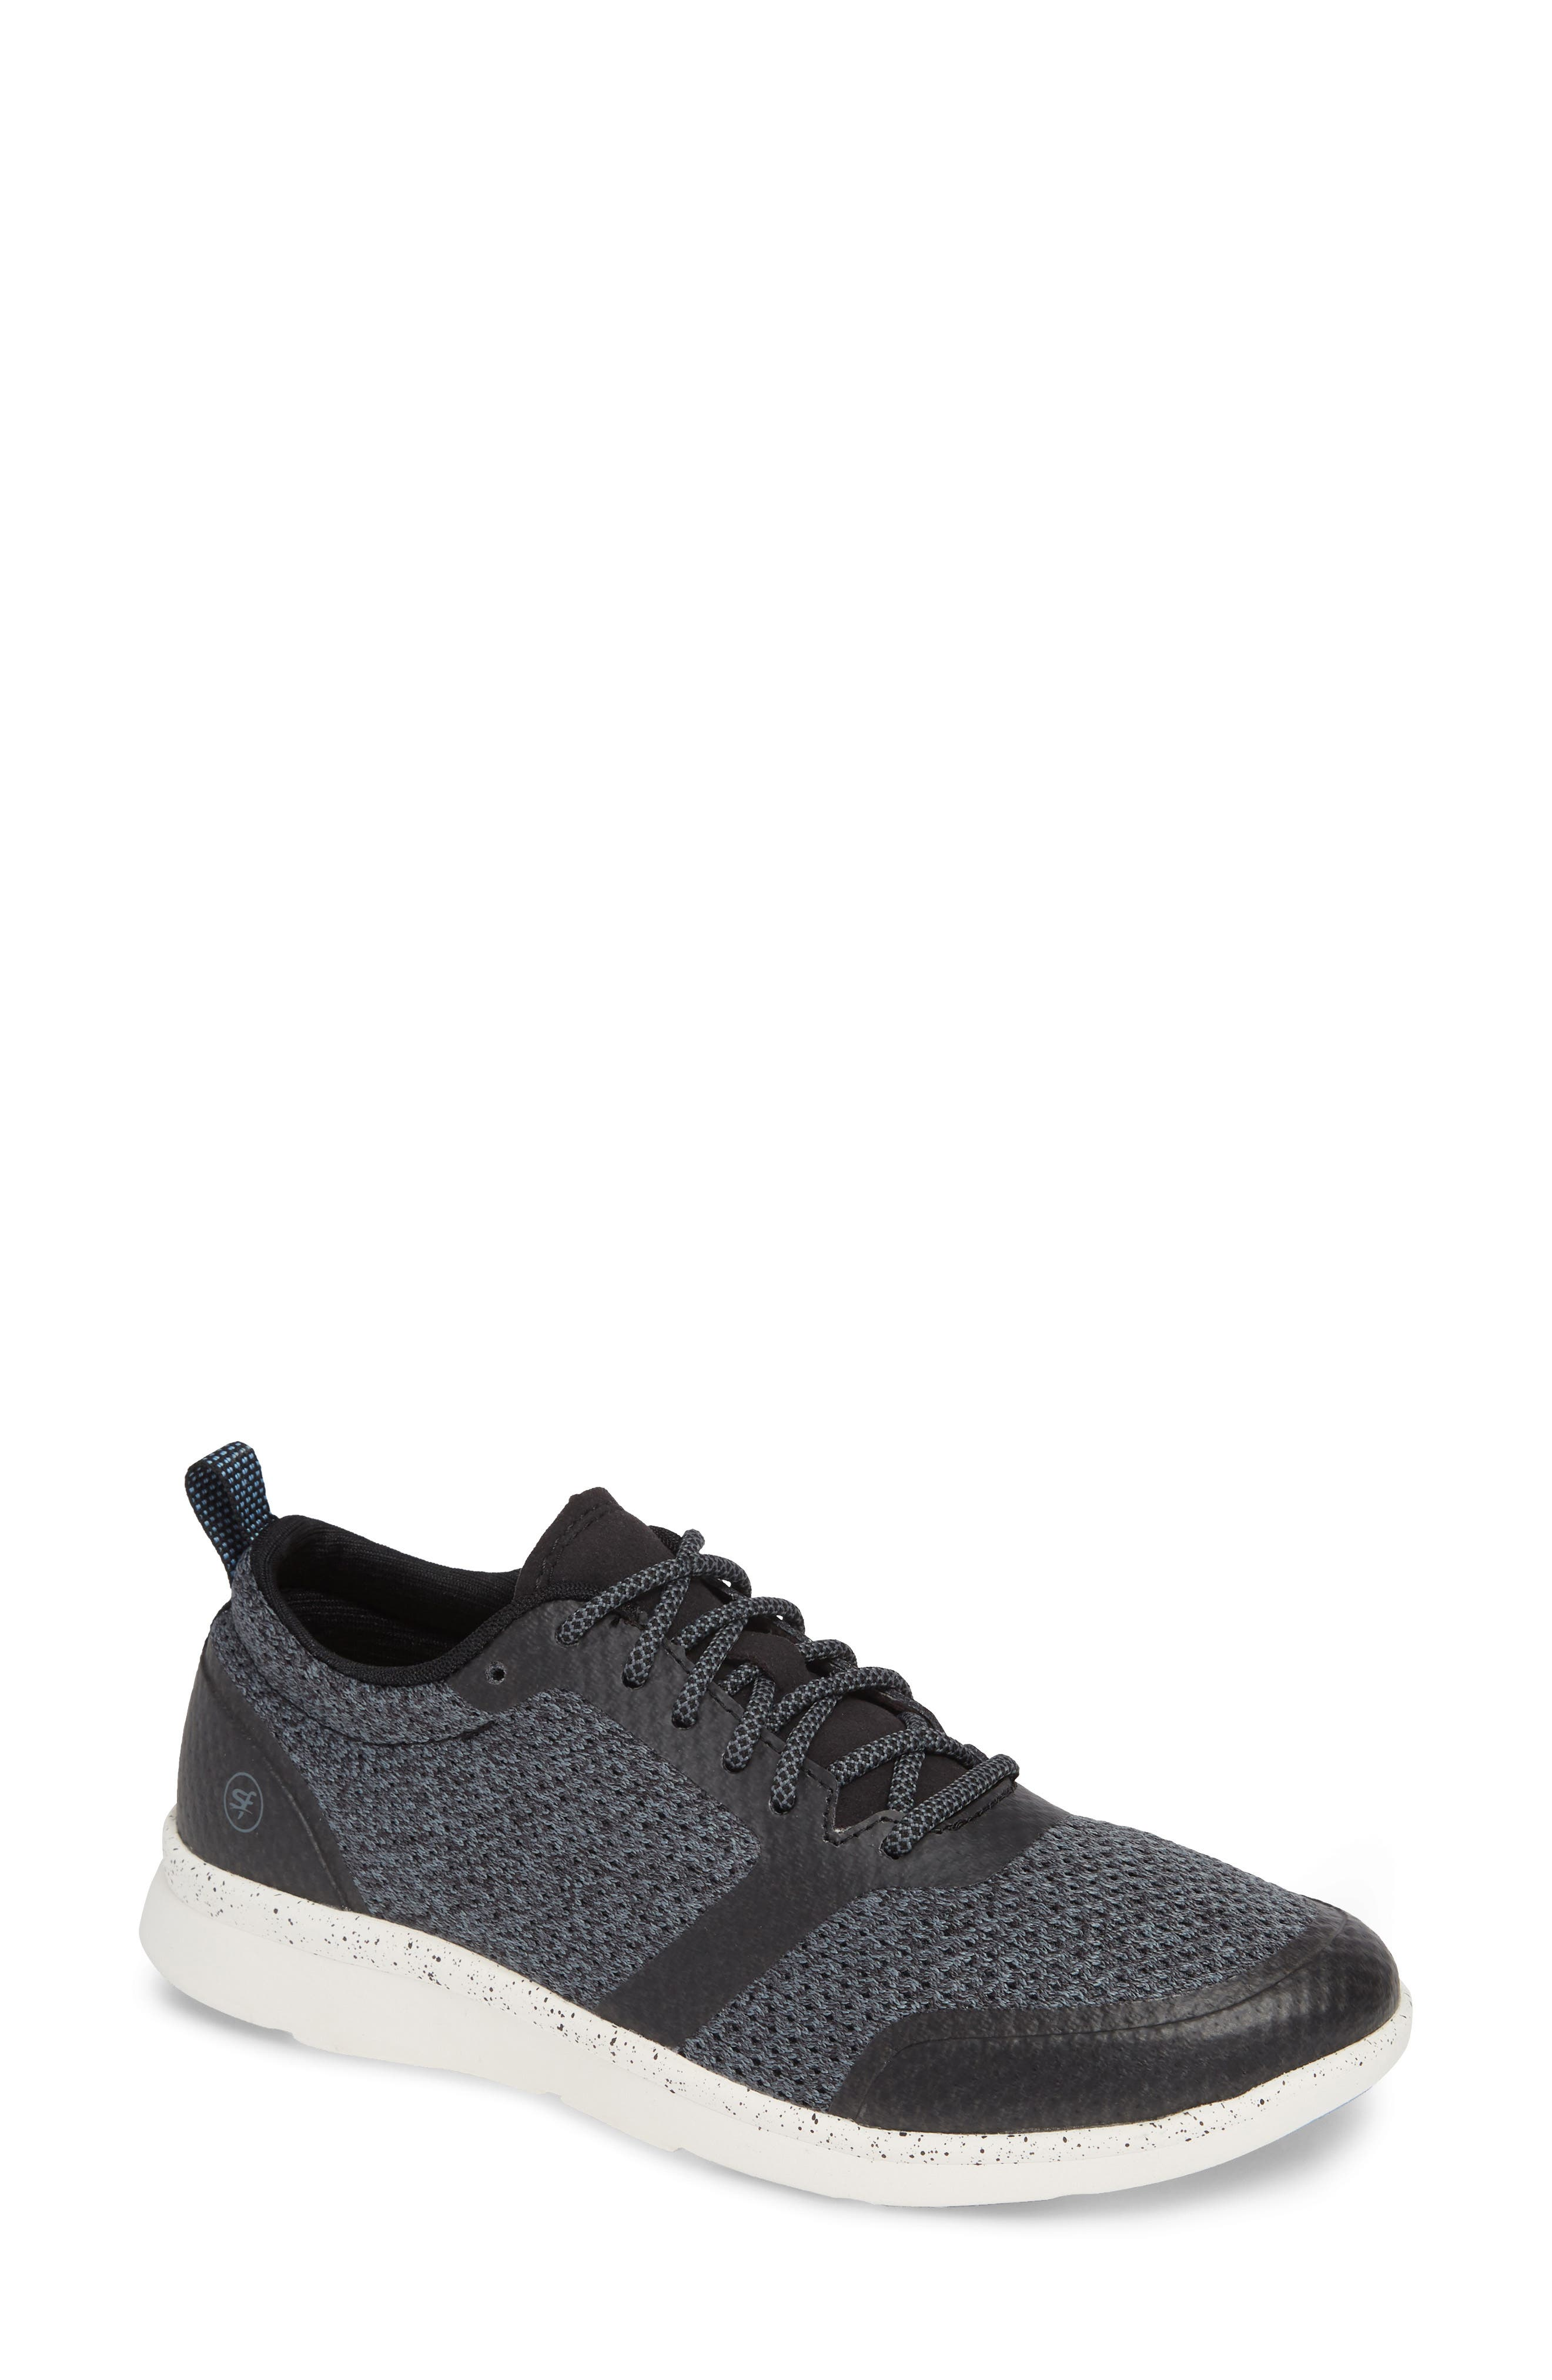 Linden Sneaker,                         Main,                         color, BLACK FABRIC